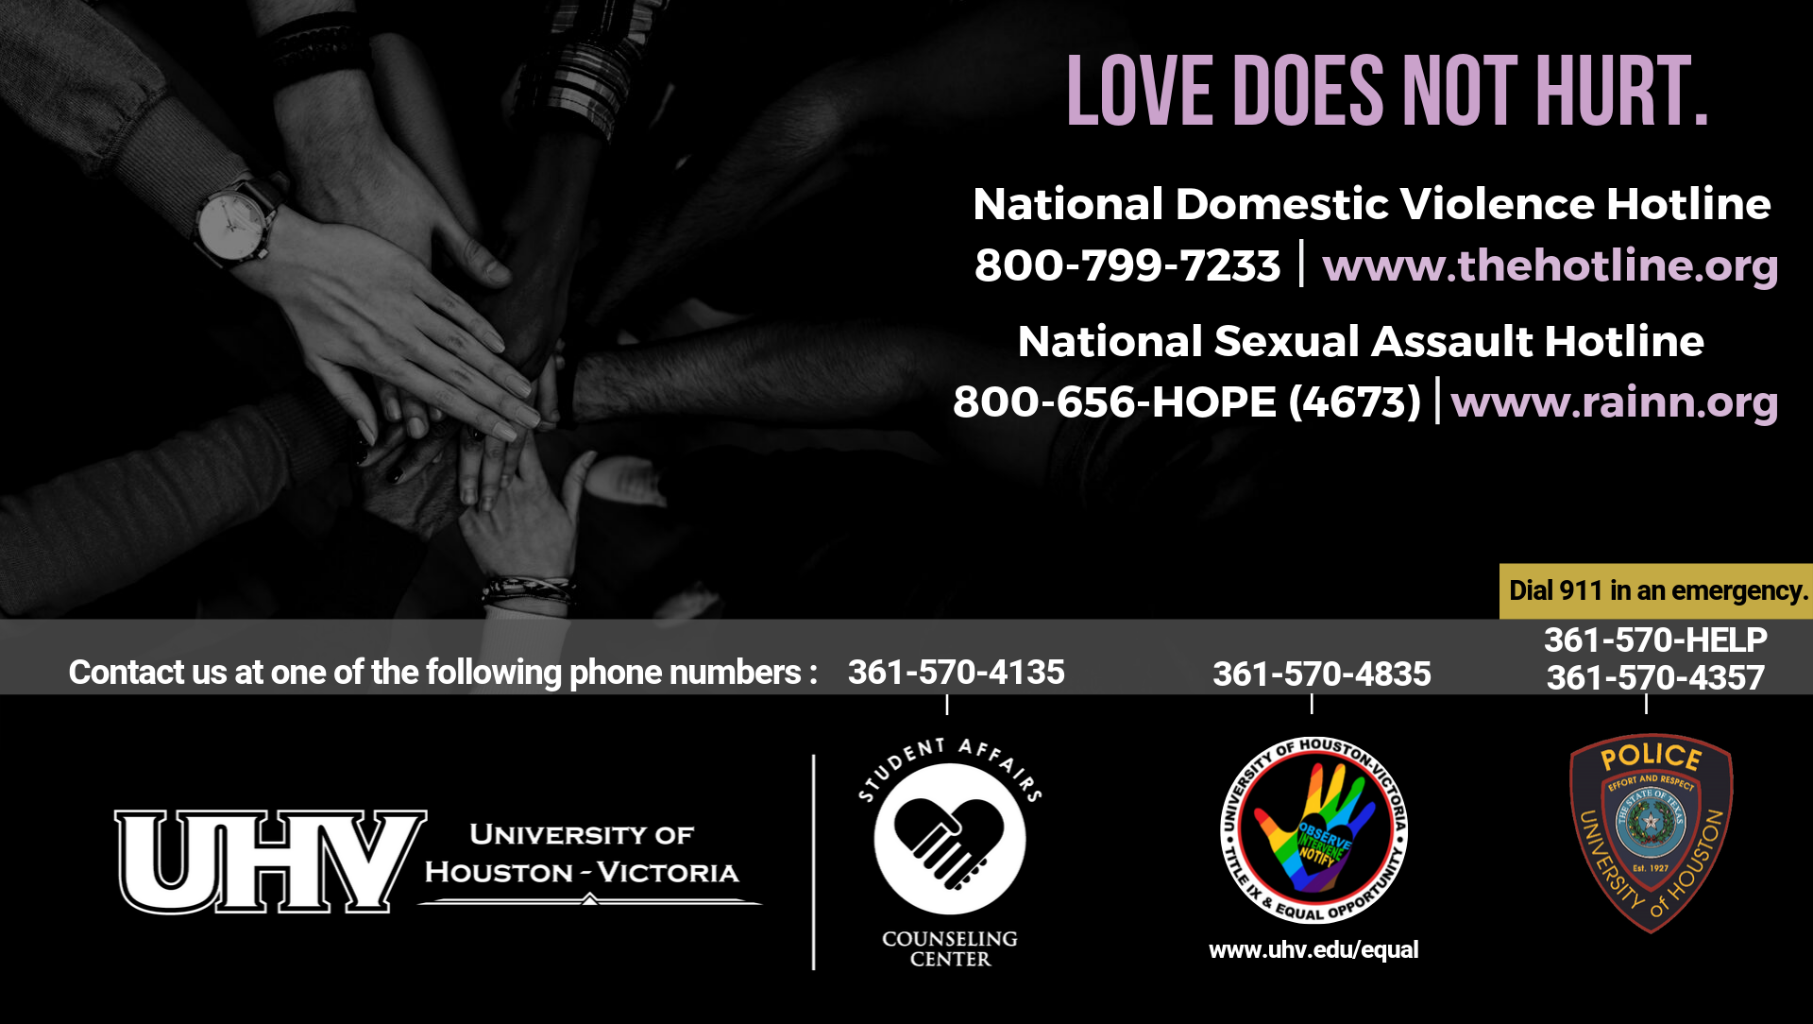 Love does not hurt. National Domestic Violence Hotline 800-799-7233 www.thehotline.org. National Sexual Assault Hotline 800-656-HOPE (4673) www.rainn.org. University of Houston-Victoria Title IX and Equal Opportunity Logo (rainbow hand with heart insert with words Observe, Intervene, Notify).